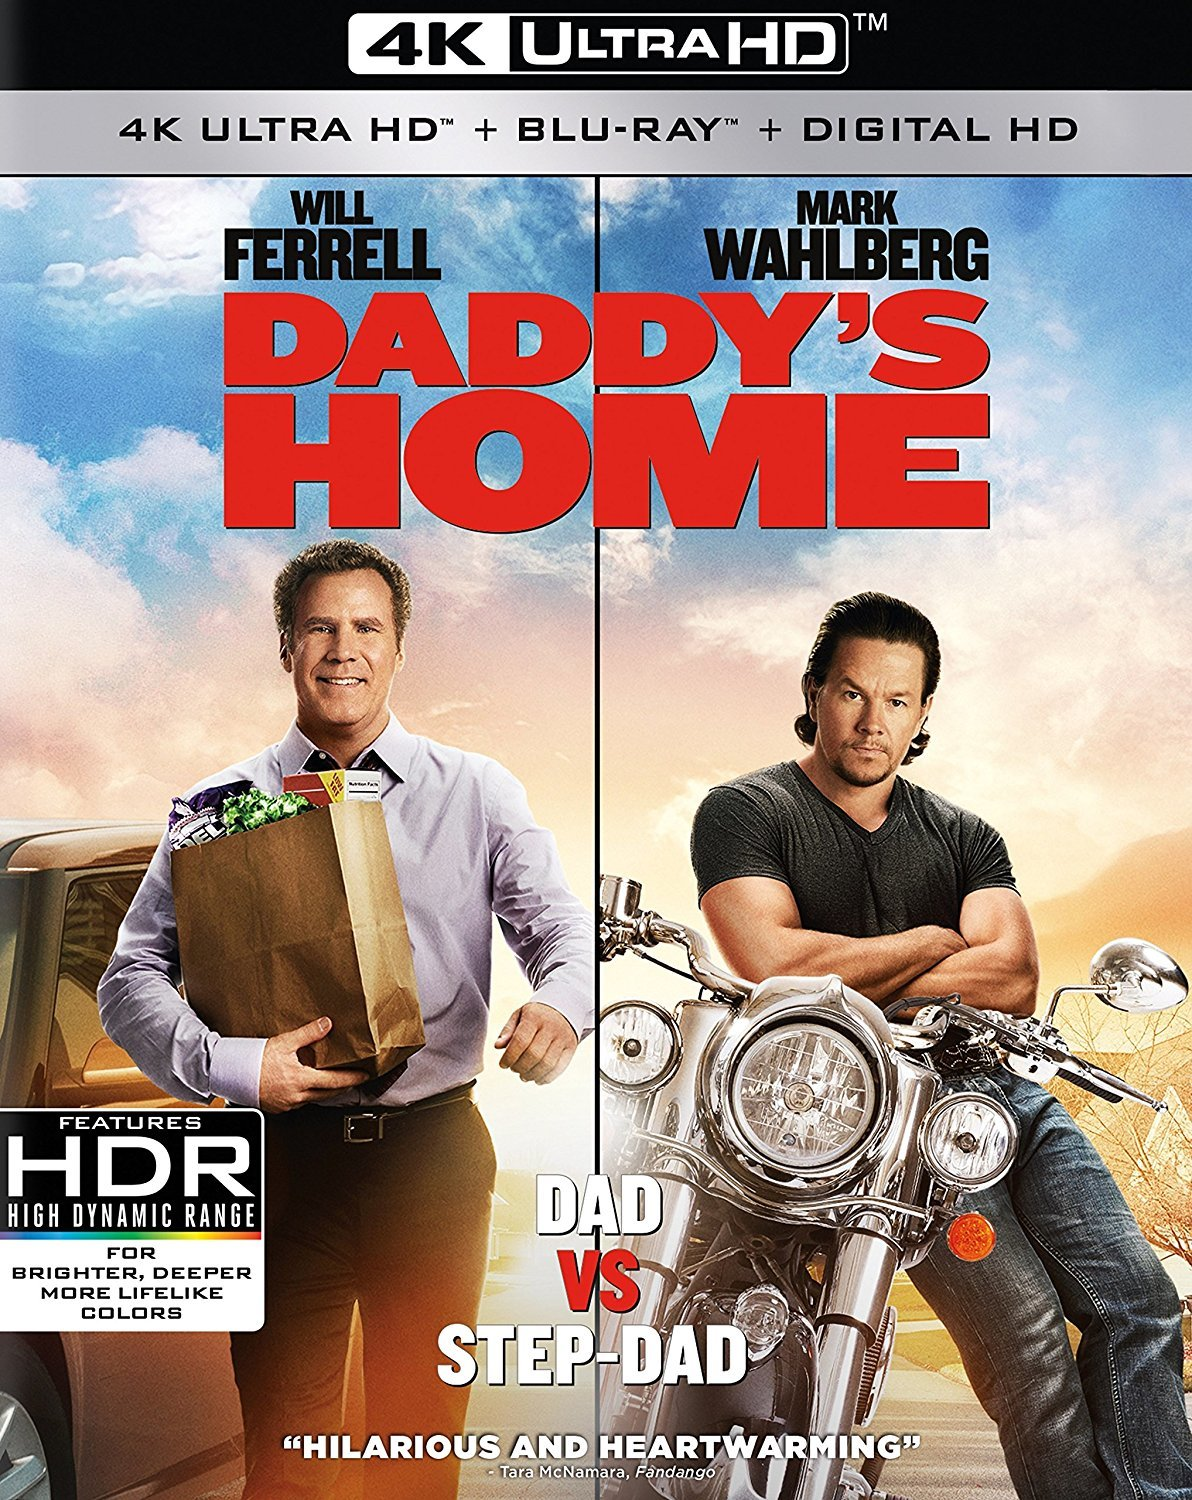 Daddys Home 4K (2015) Ultra HD Blu-ray